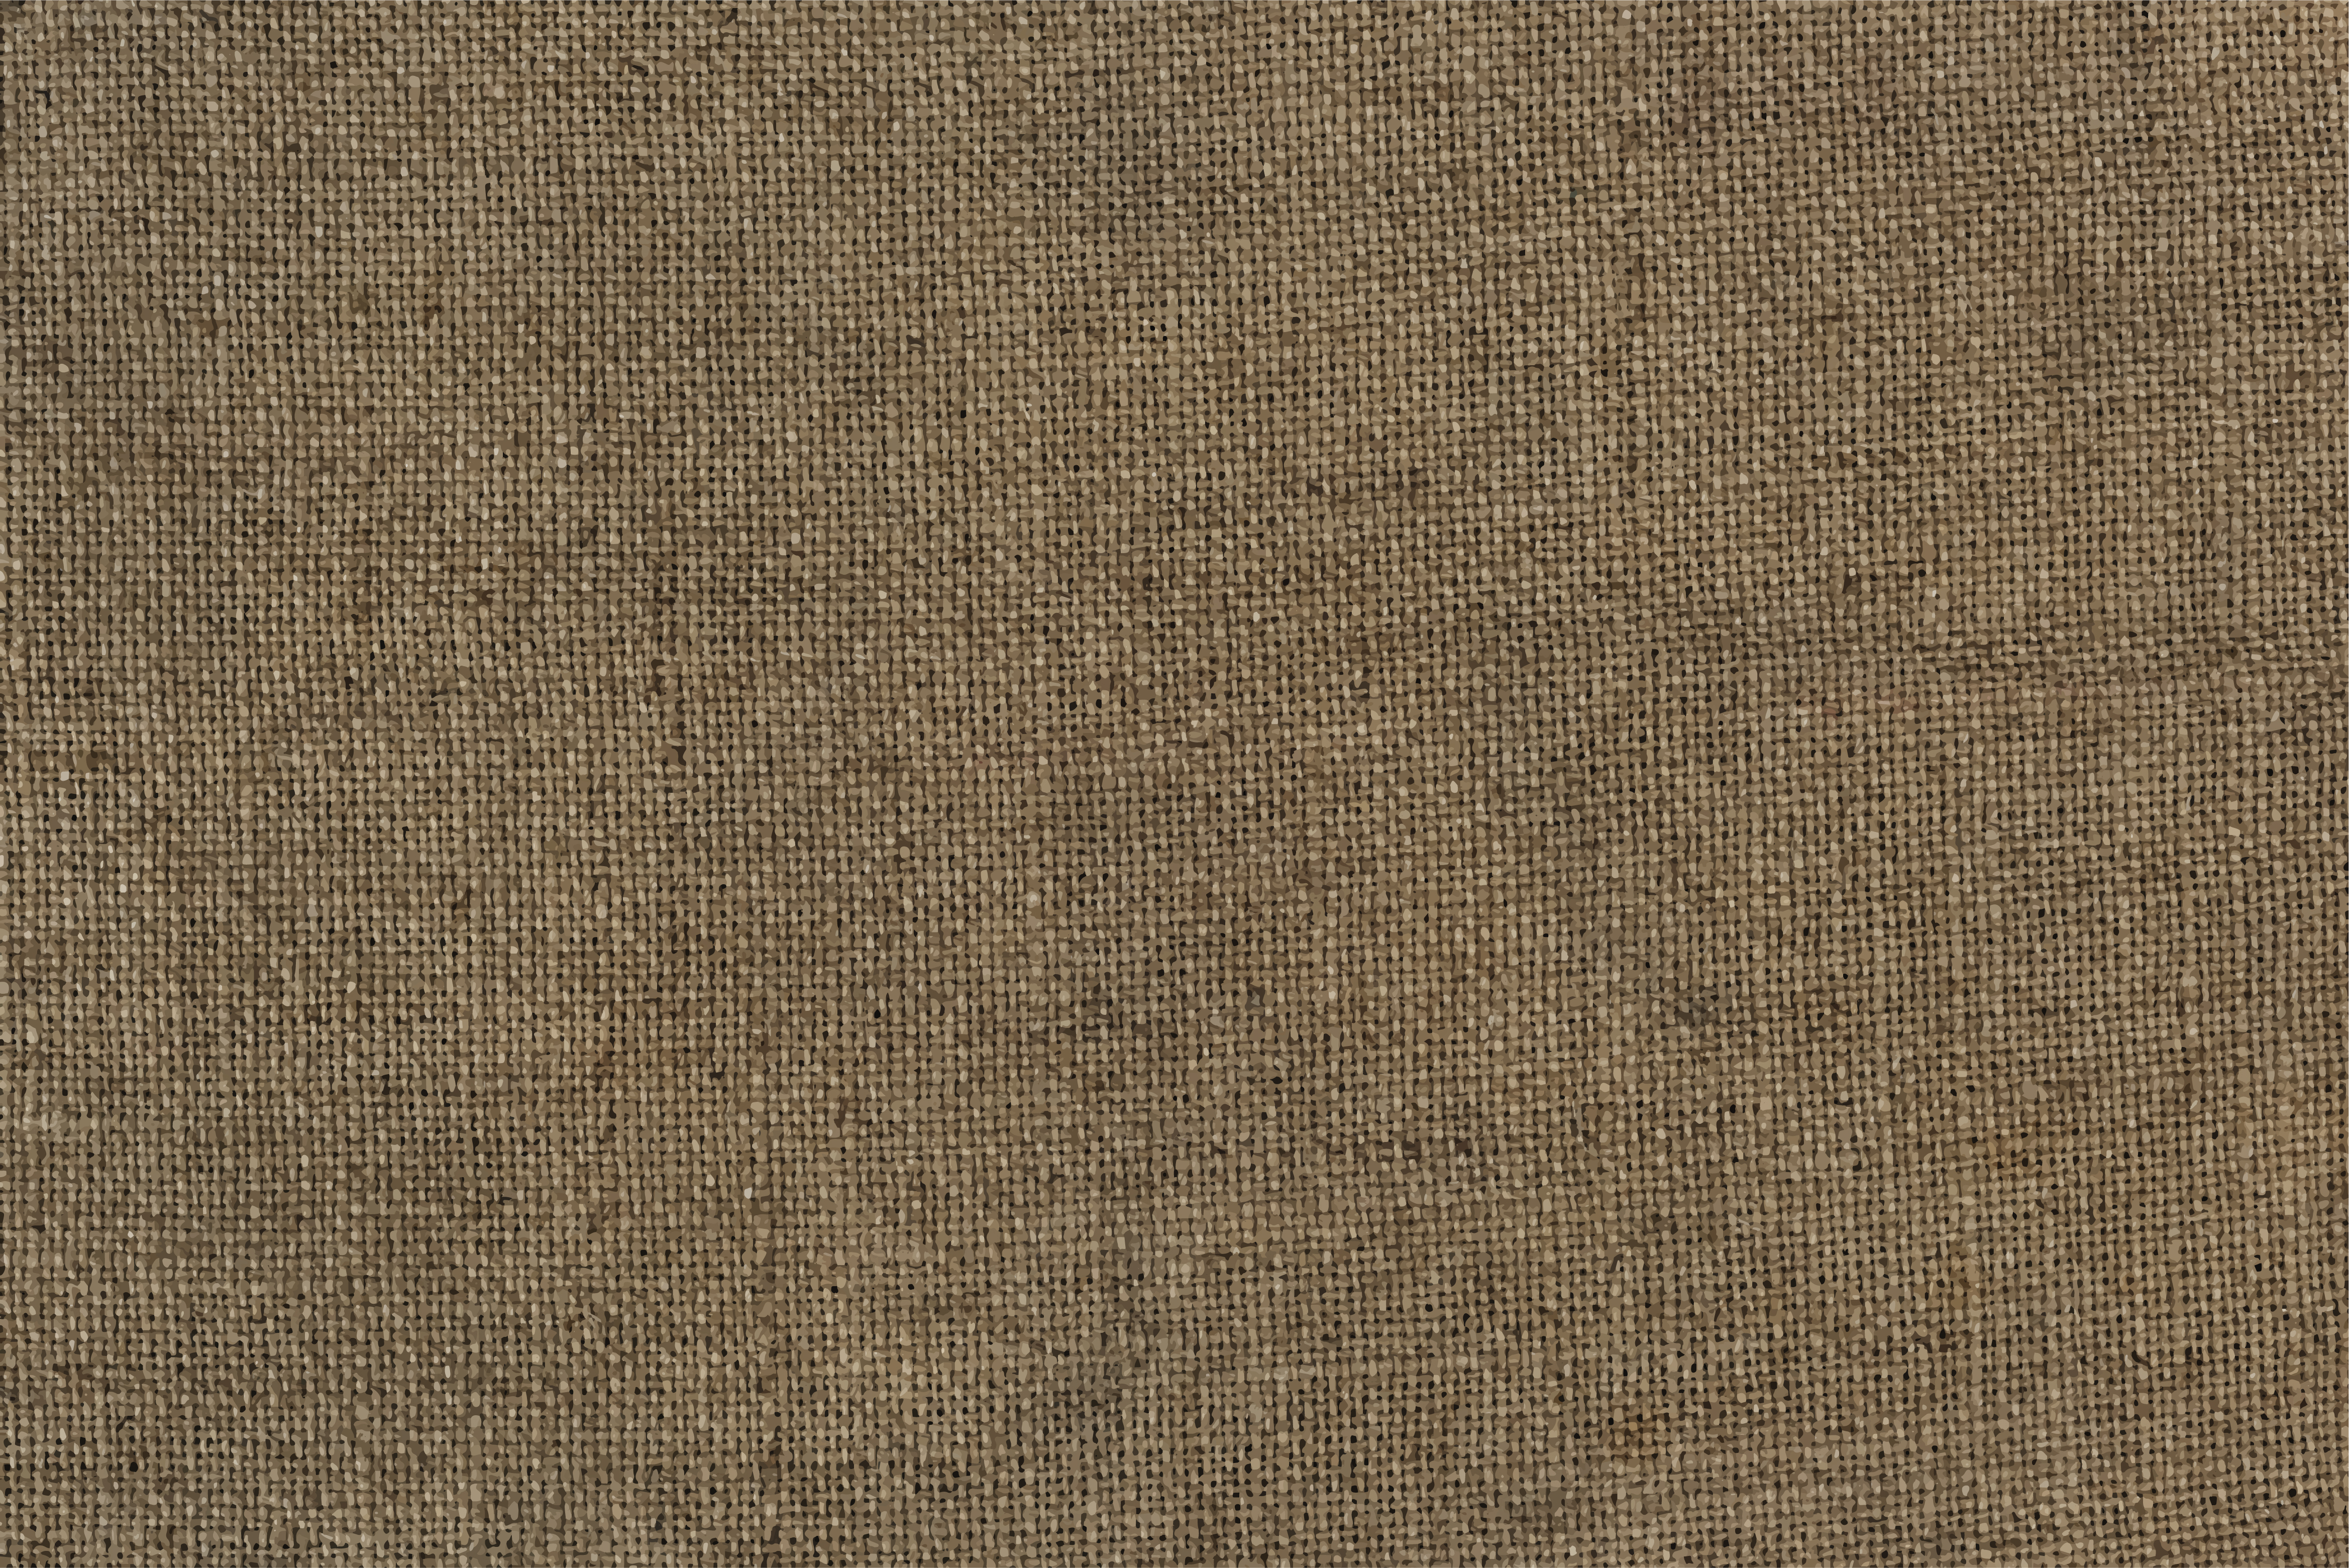 6b7dd17f214a9 Close up of a burlap jute bag textured background - Download Free ...